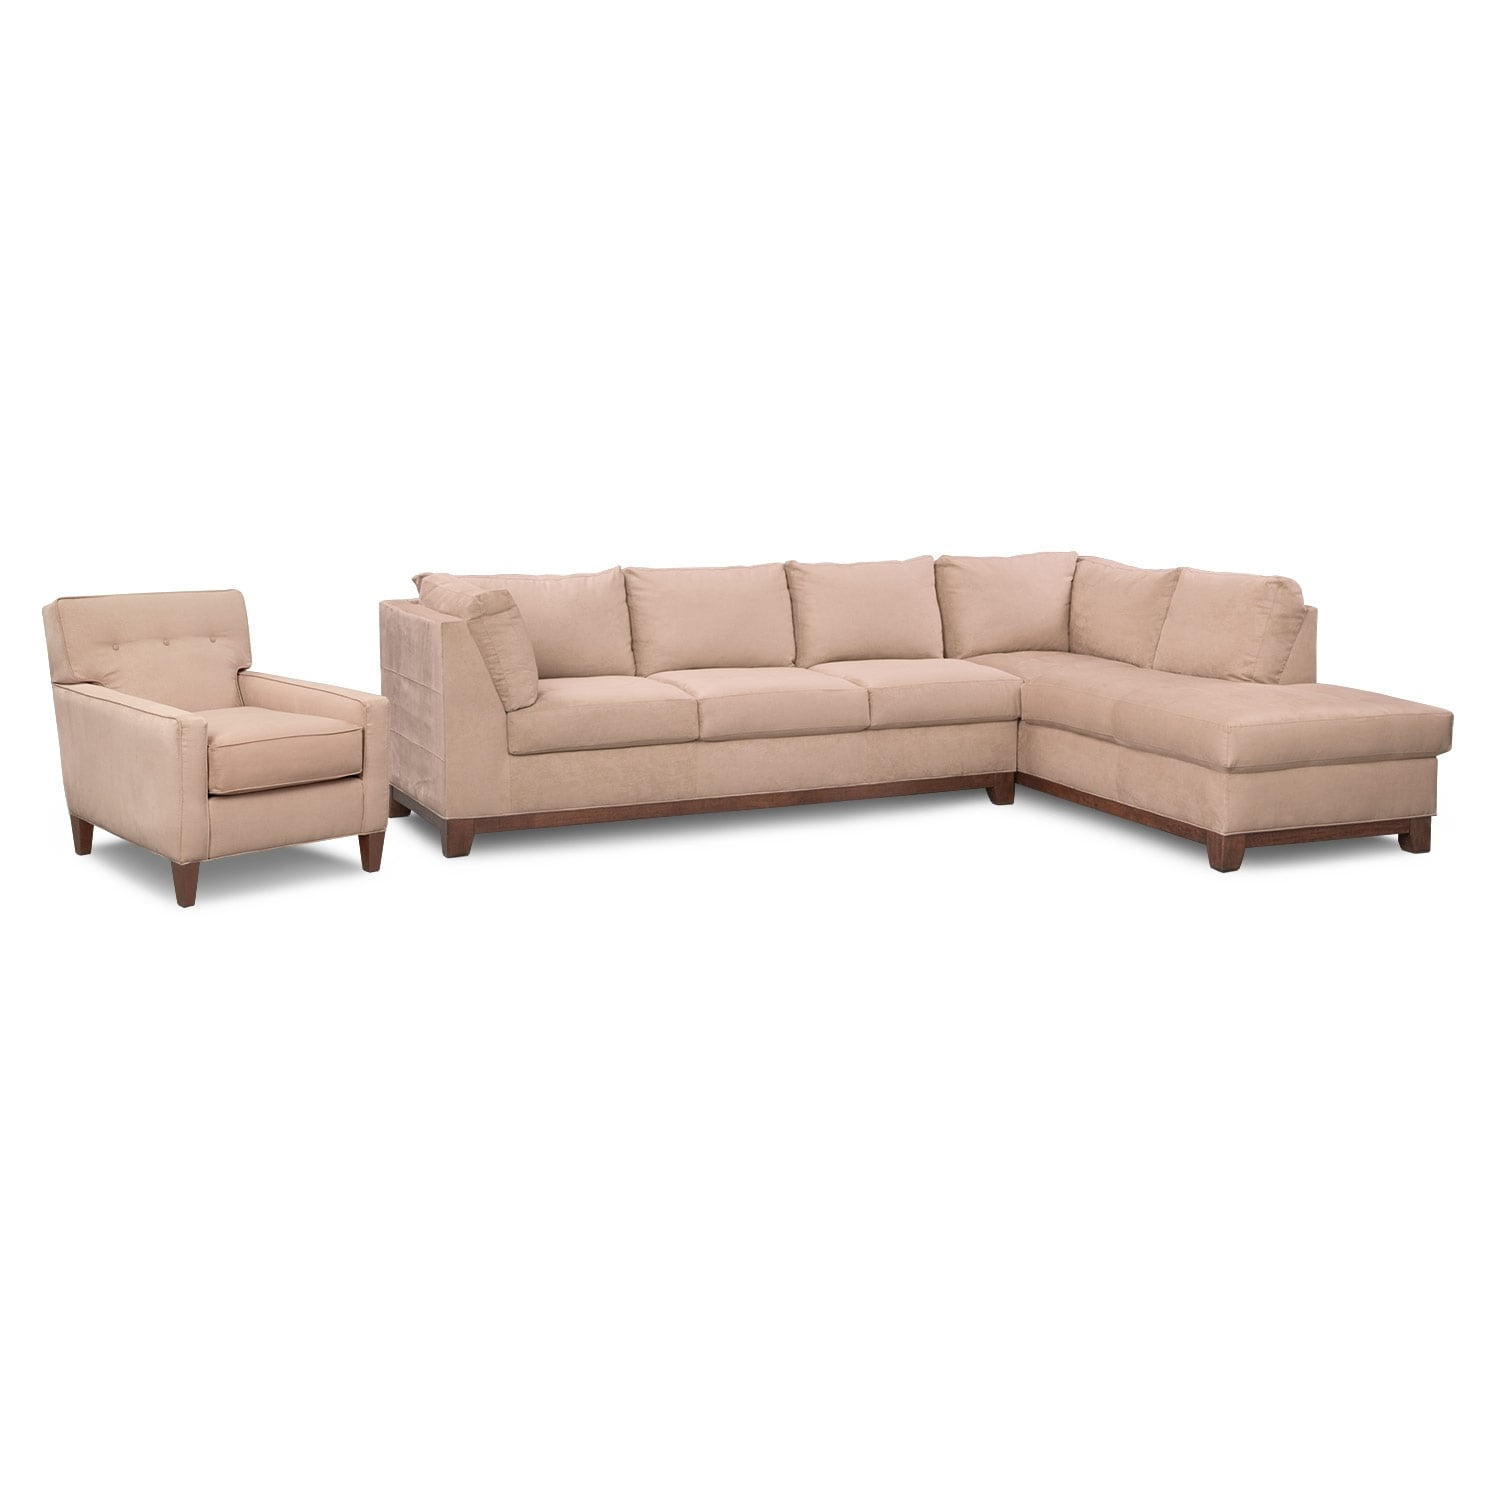 soho 2piece sectional with rightfacing chaise and chair cobblestone